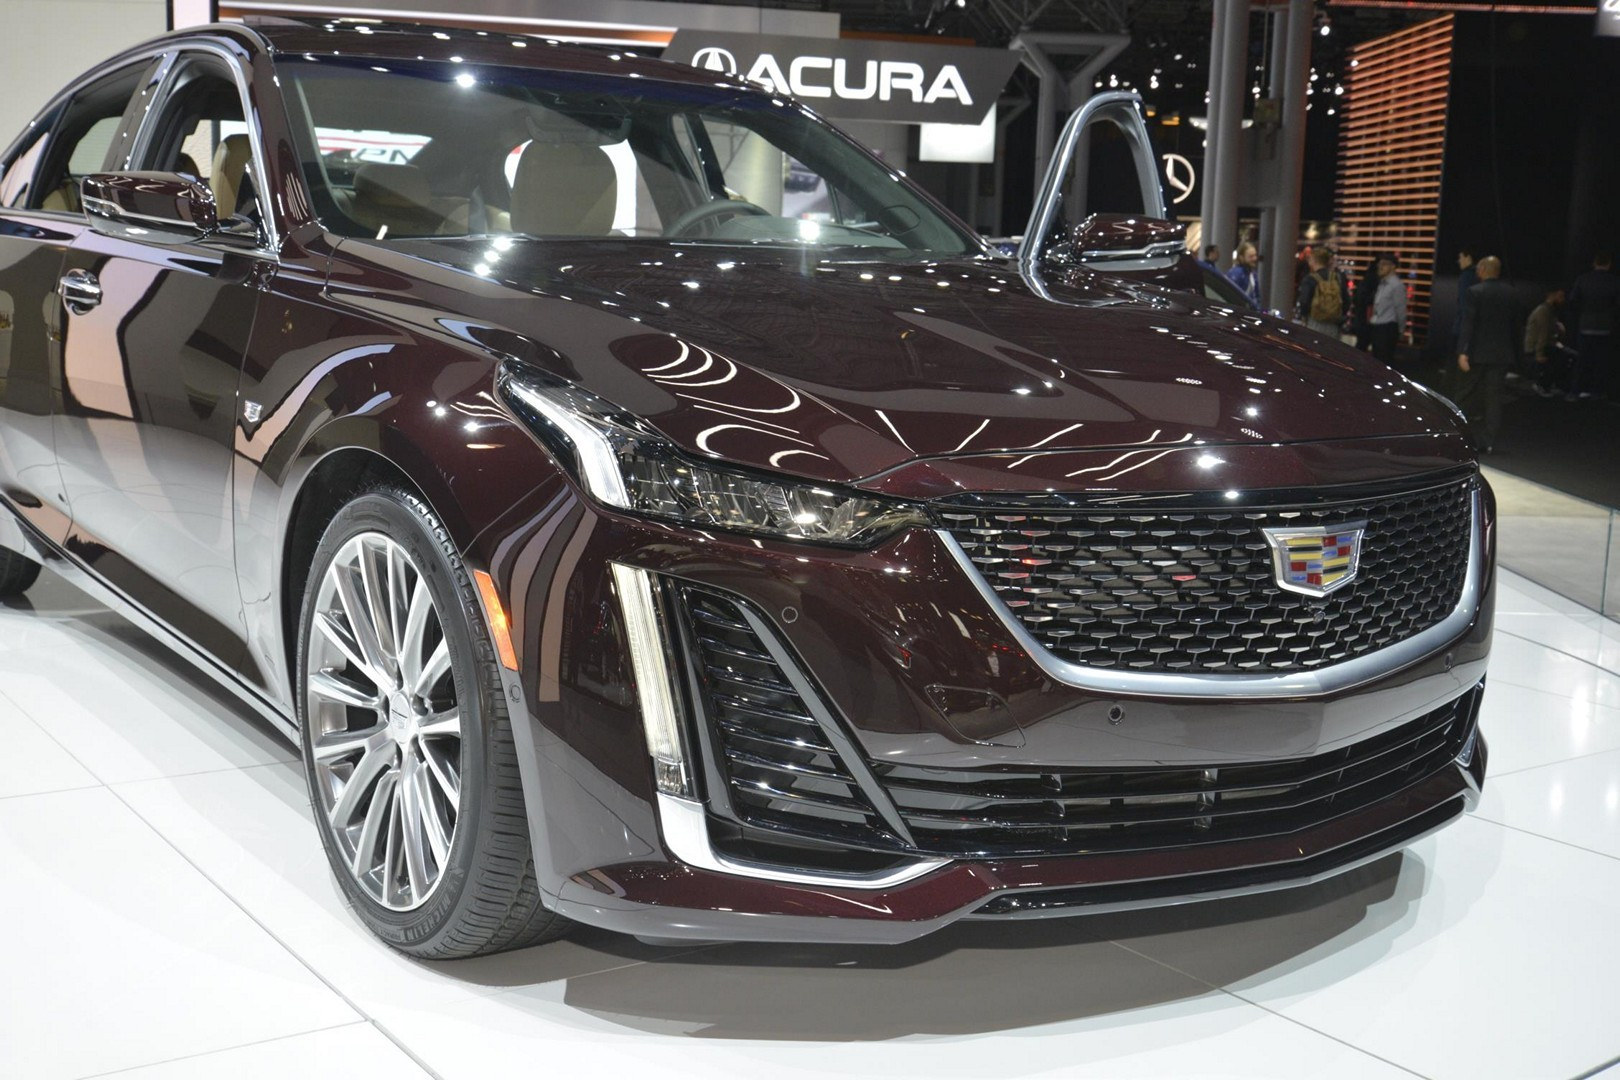 2020 Cadillac Ct5 Sedan Reviewed In China Looks More